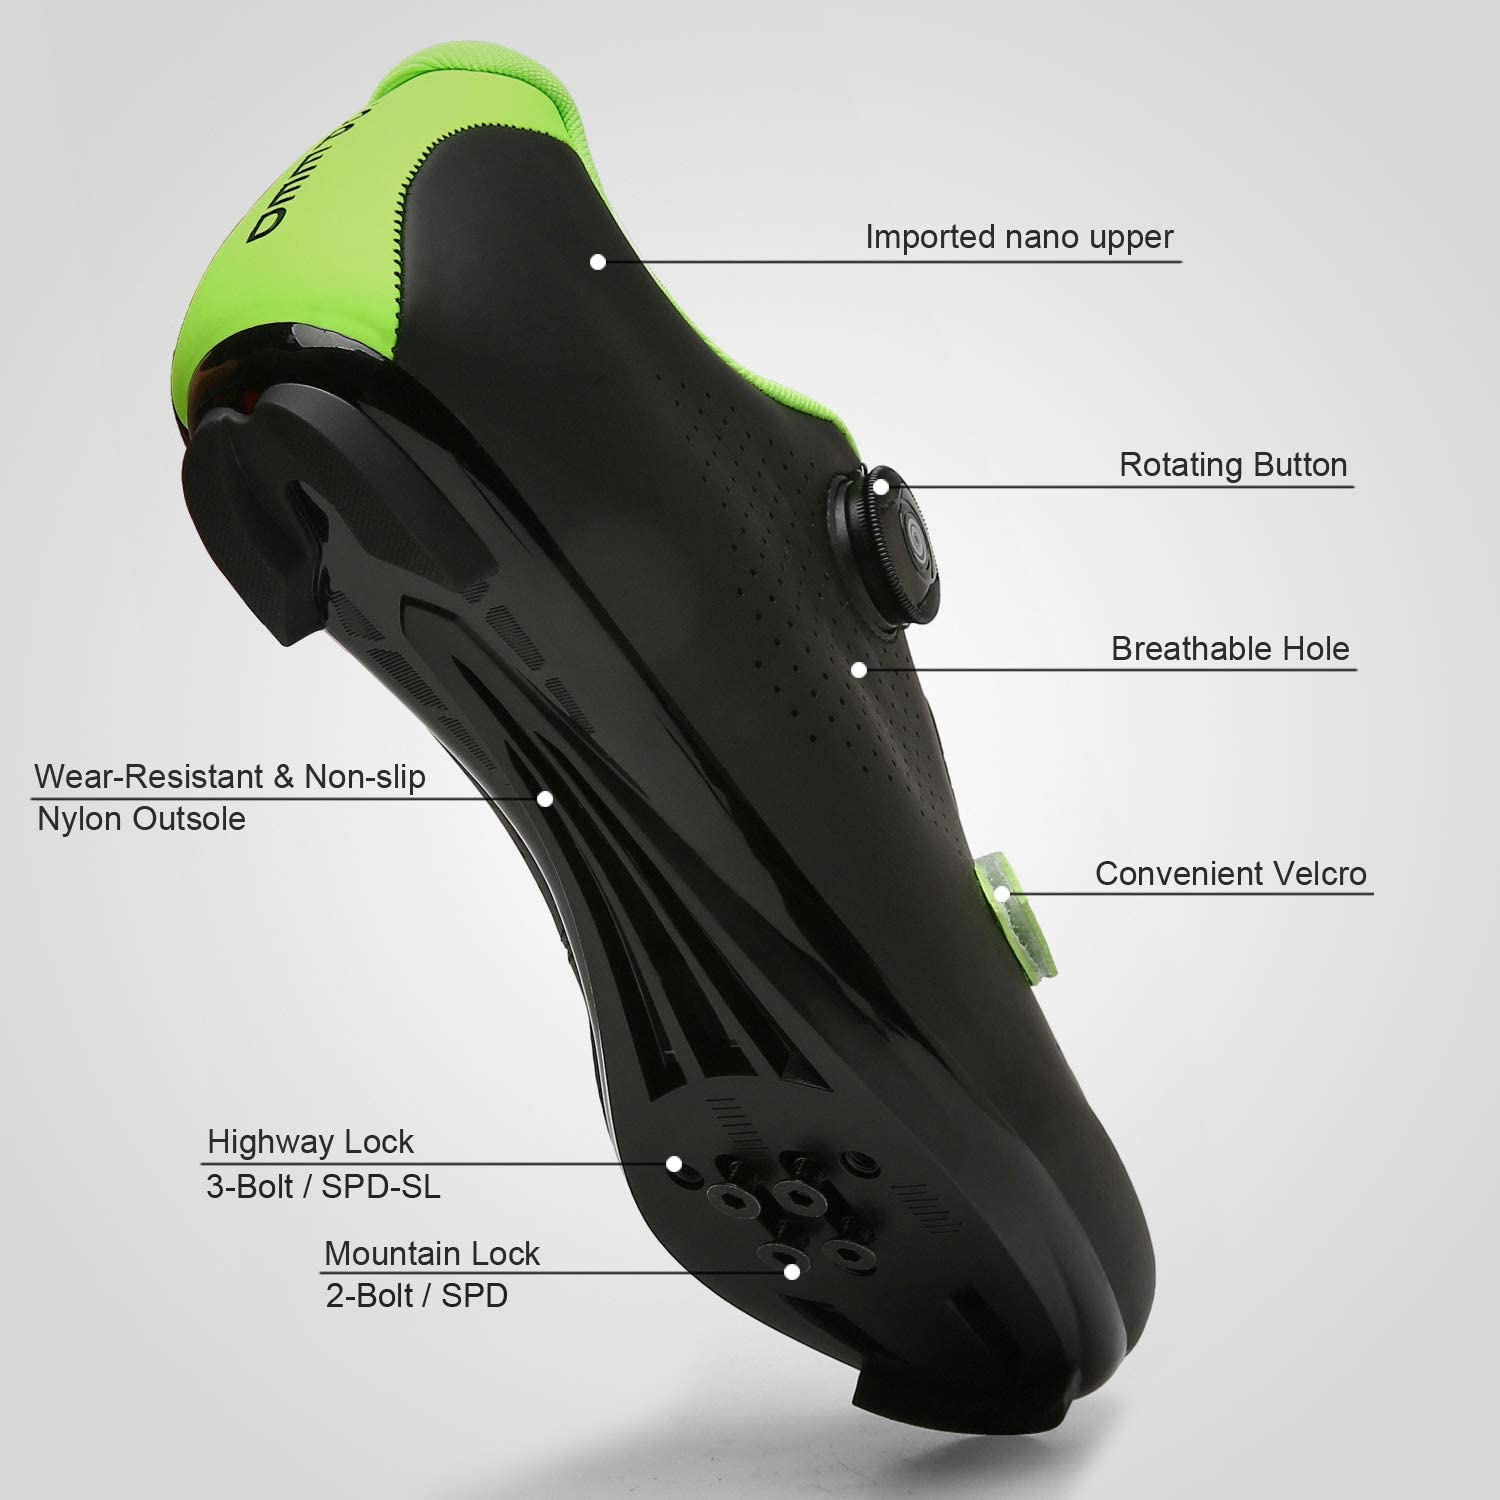 LakeRom Cycling Shoes for Men Women Road Riding Rotating Shoe Buckle Breathable Cleat Compatible SPD Indoor Cycling Shoes